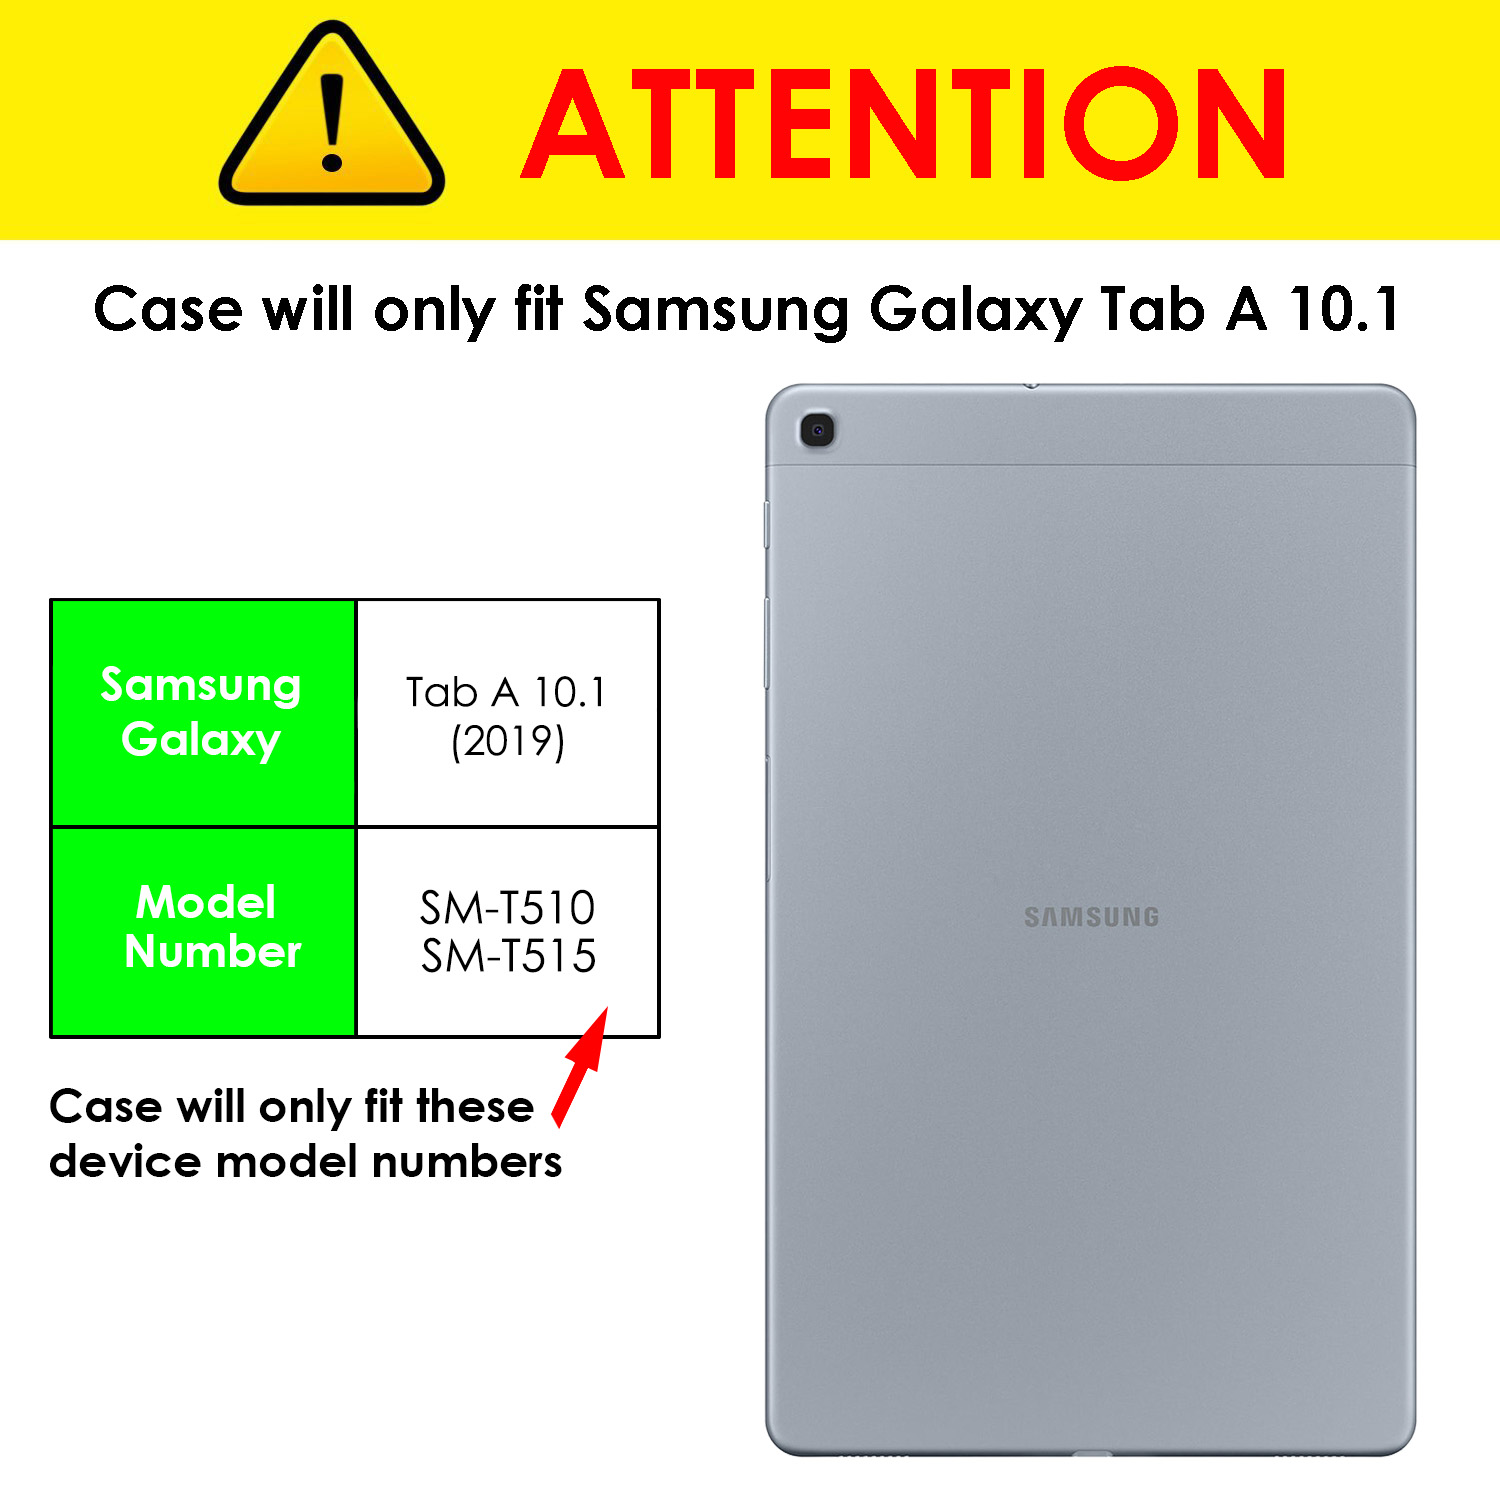 miniature 100 - Samsung Galaxy Tab A 10.1 2019 Étui Magnétique Protection & Support + Stylet